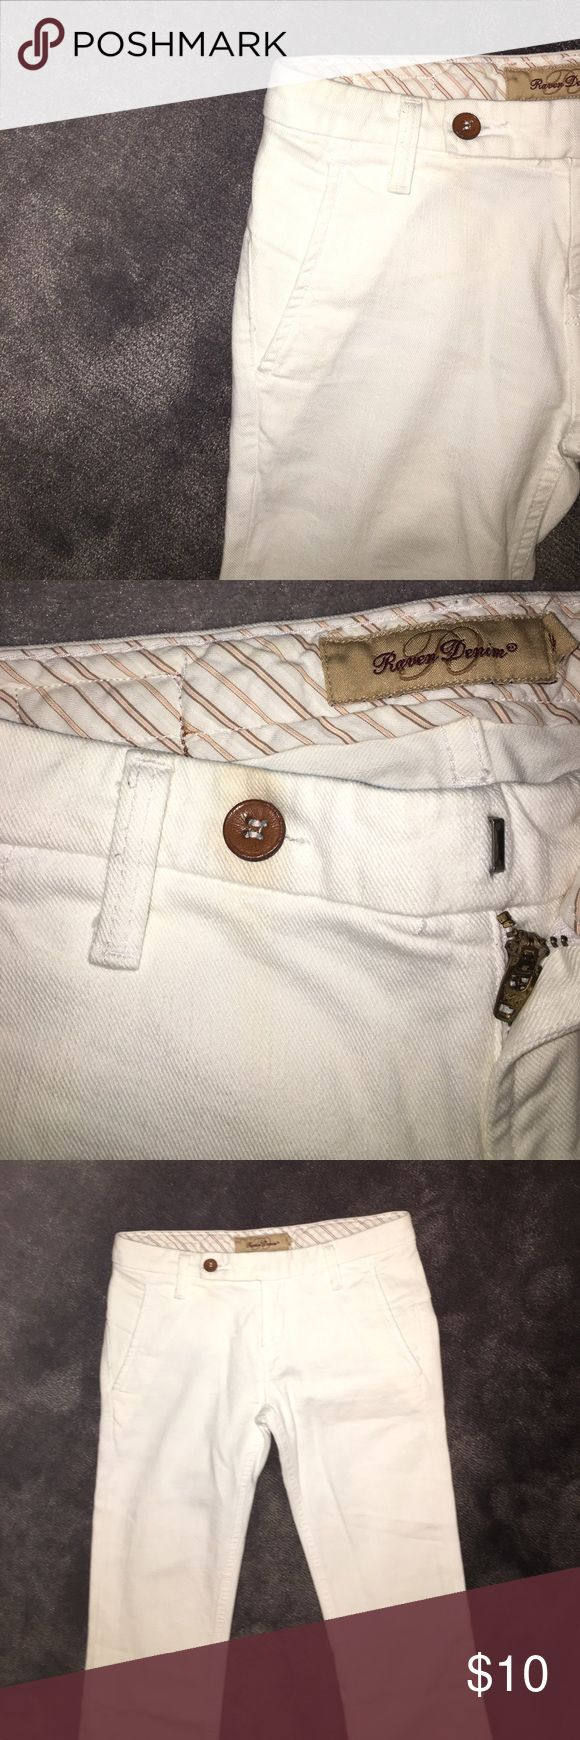 Designer White Flare Pants Some discoloration, in small and hide able areas. Would come out with dry cleaning, however thats why they are an awesome price! Branded for Exposure. Really Raven Denim another Designer. Free People Jeans Flare & Wide Leg